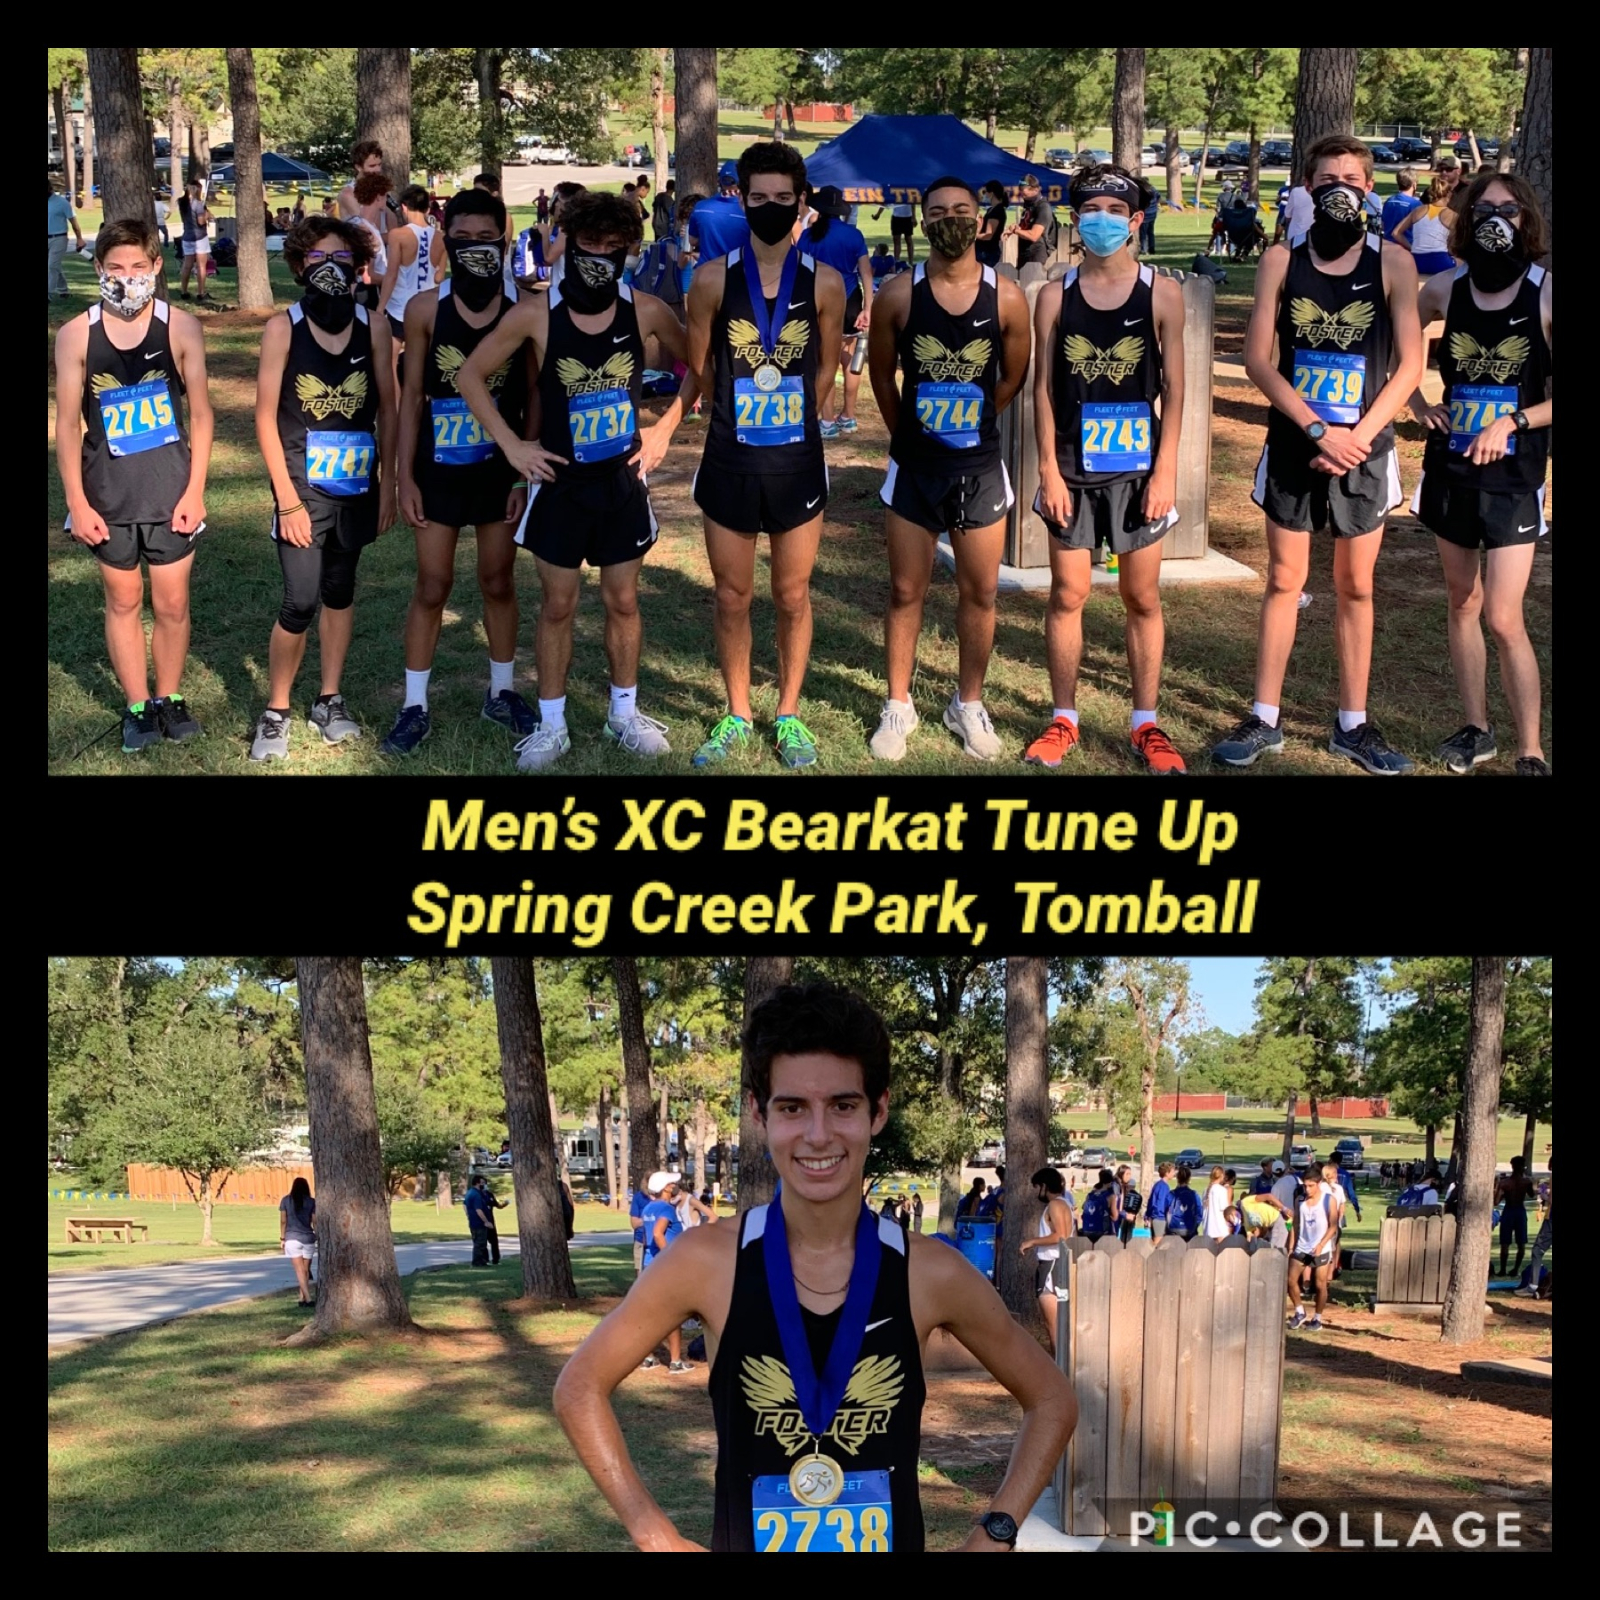 Men's XC Bearkat Tune Up Spring Creek Park, Tomball